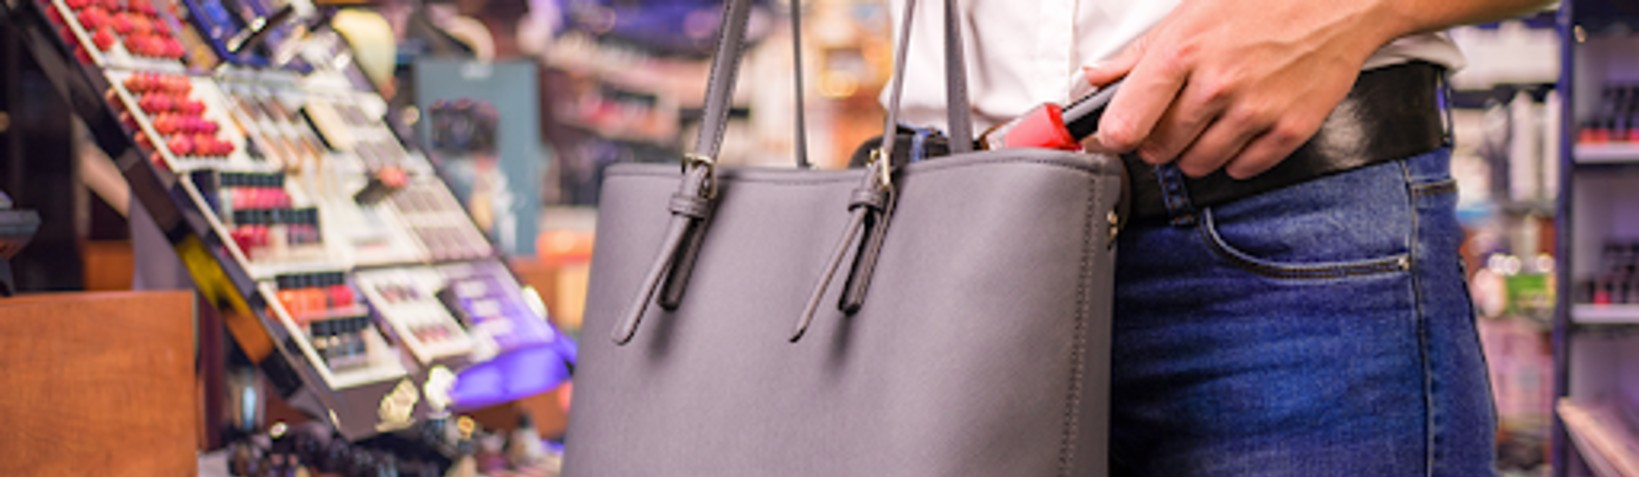 <b>Petty Theft:</b><br>Stealing a Property Worth Less than $950